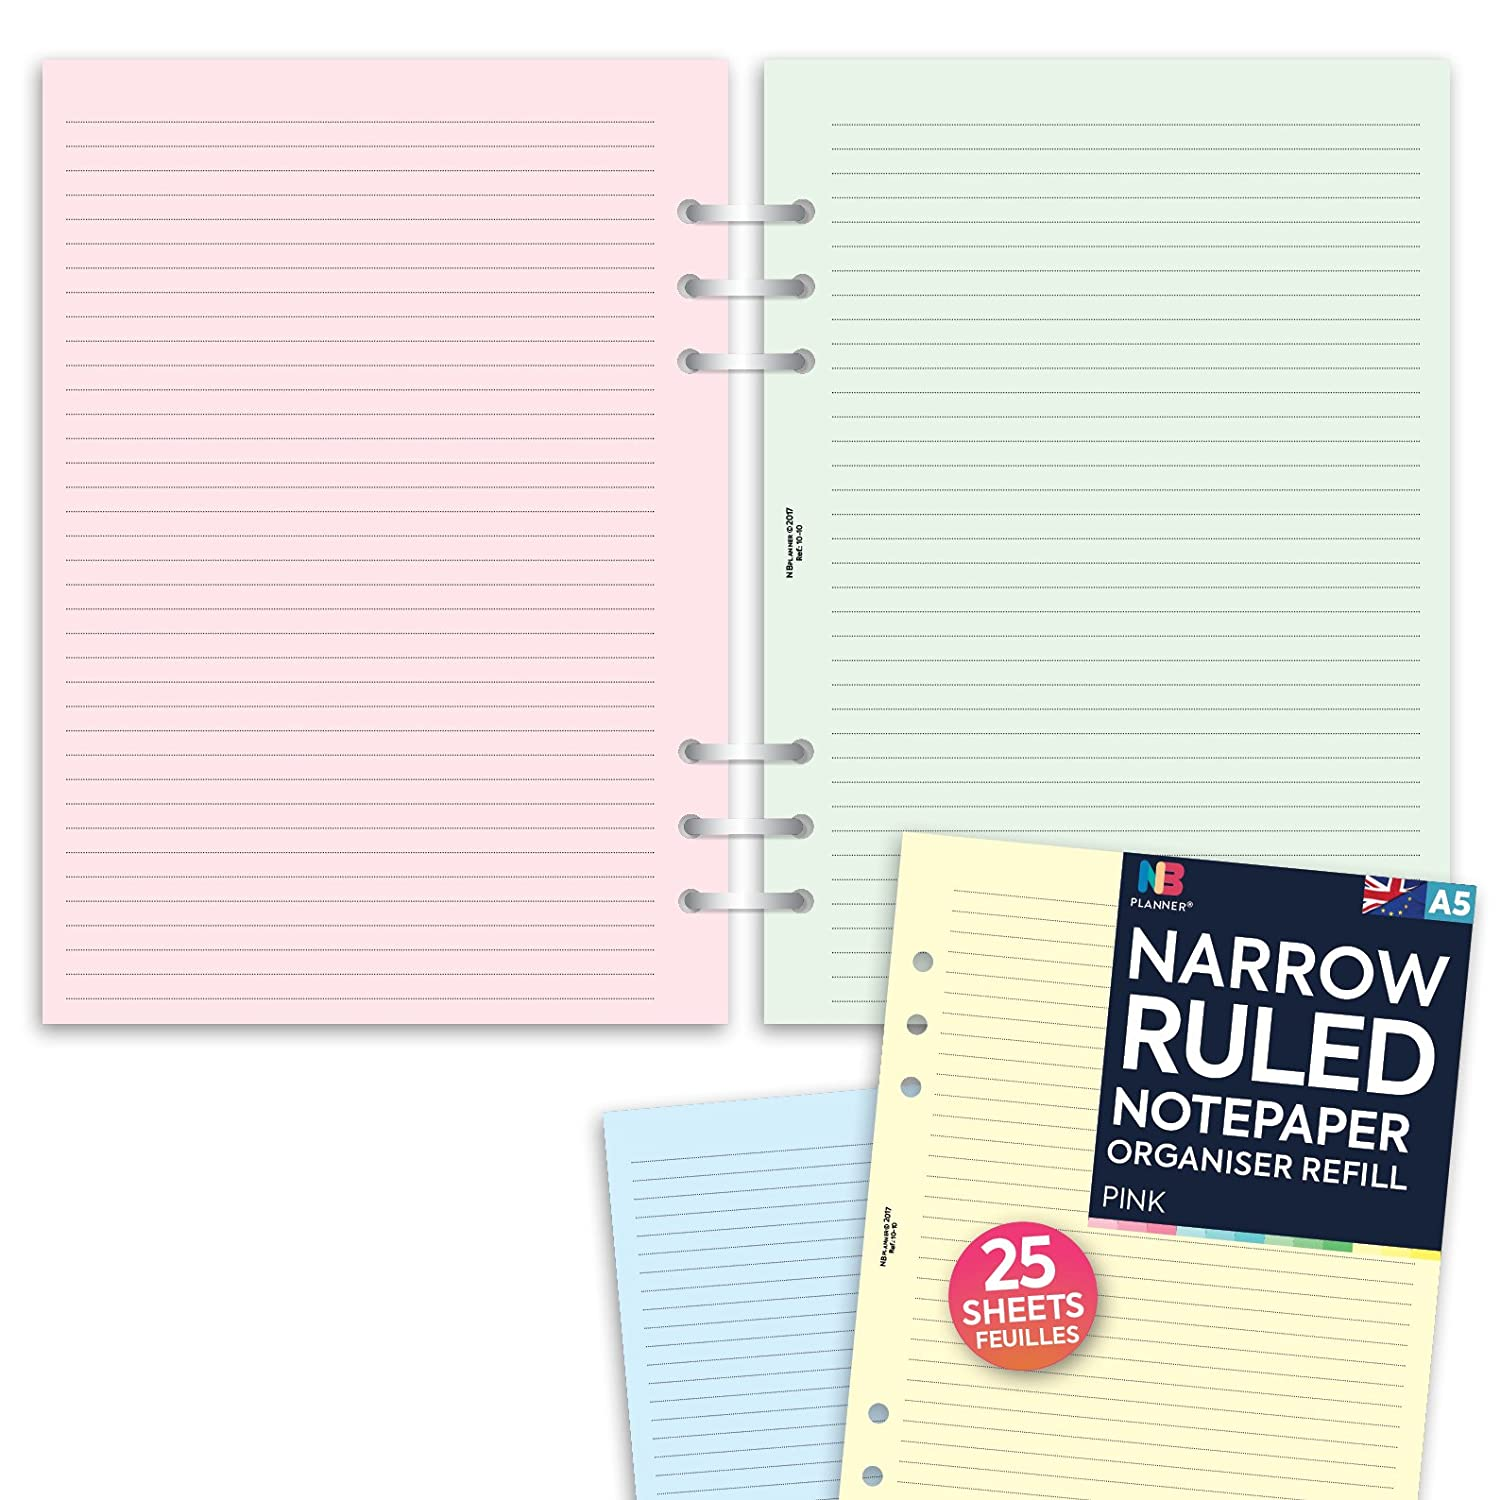 A5 Classic Coloured Ruled Notepaper Filofax Refills Undated All Sizes /& Variations for Filofax Organisers